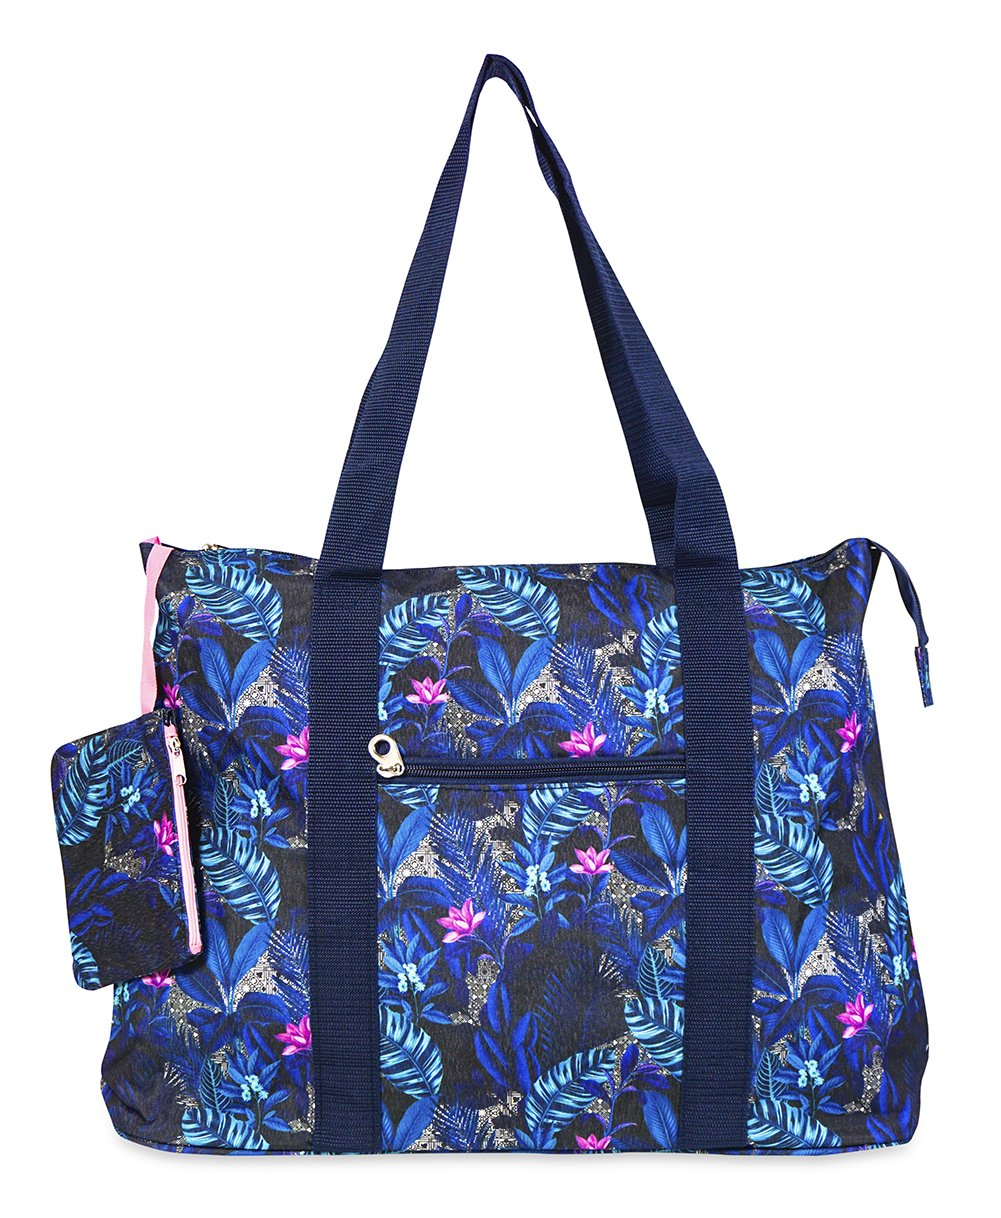 Jenzys Floral Large Travel Toteバッグ   B07FB57RG9